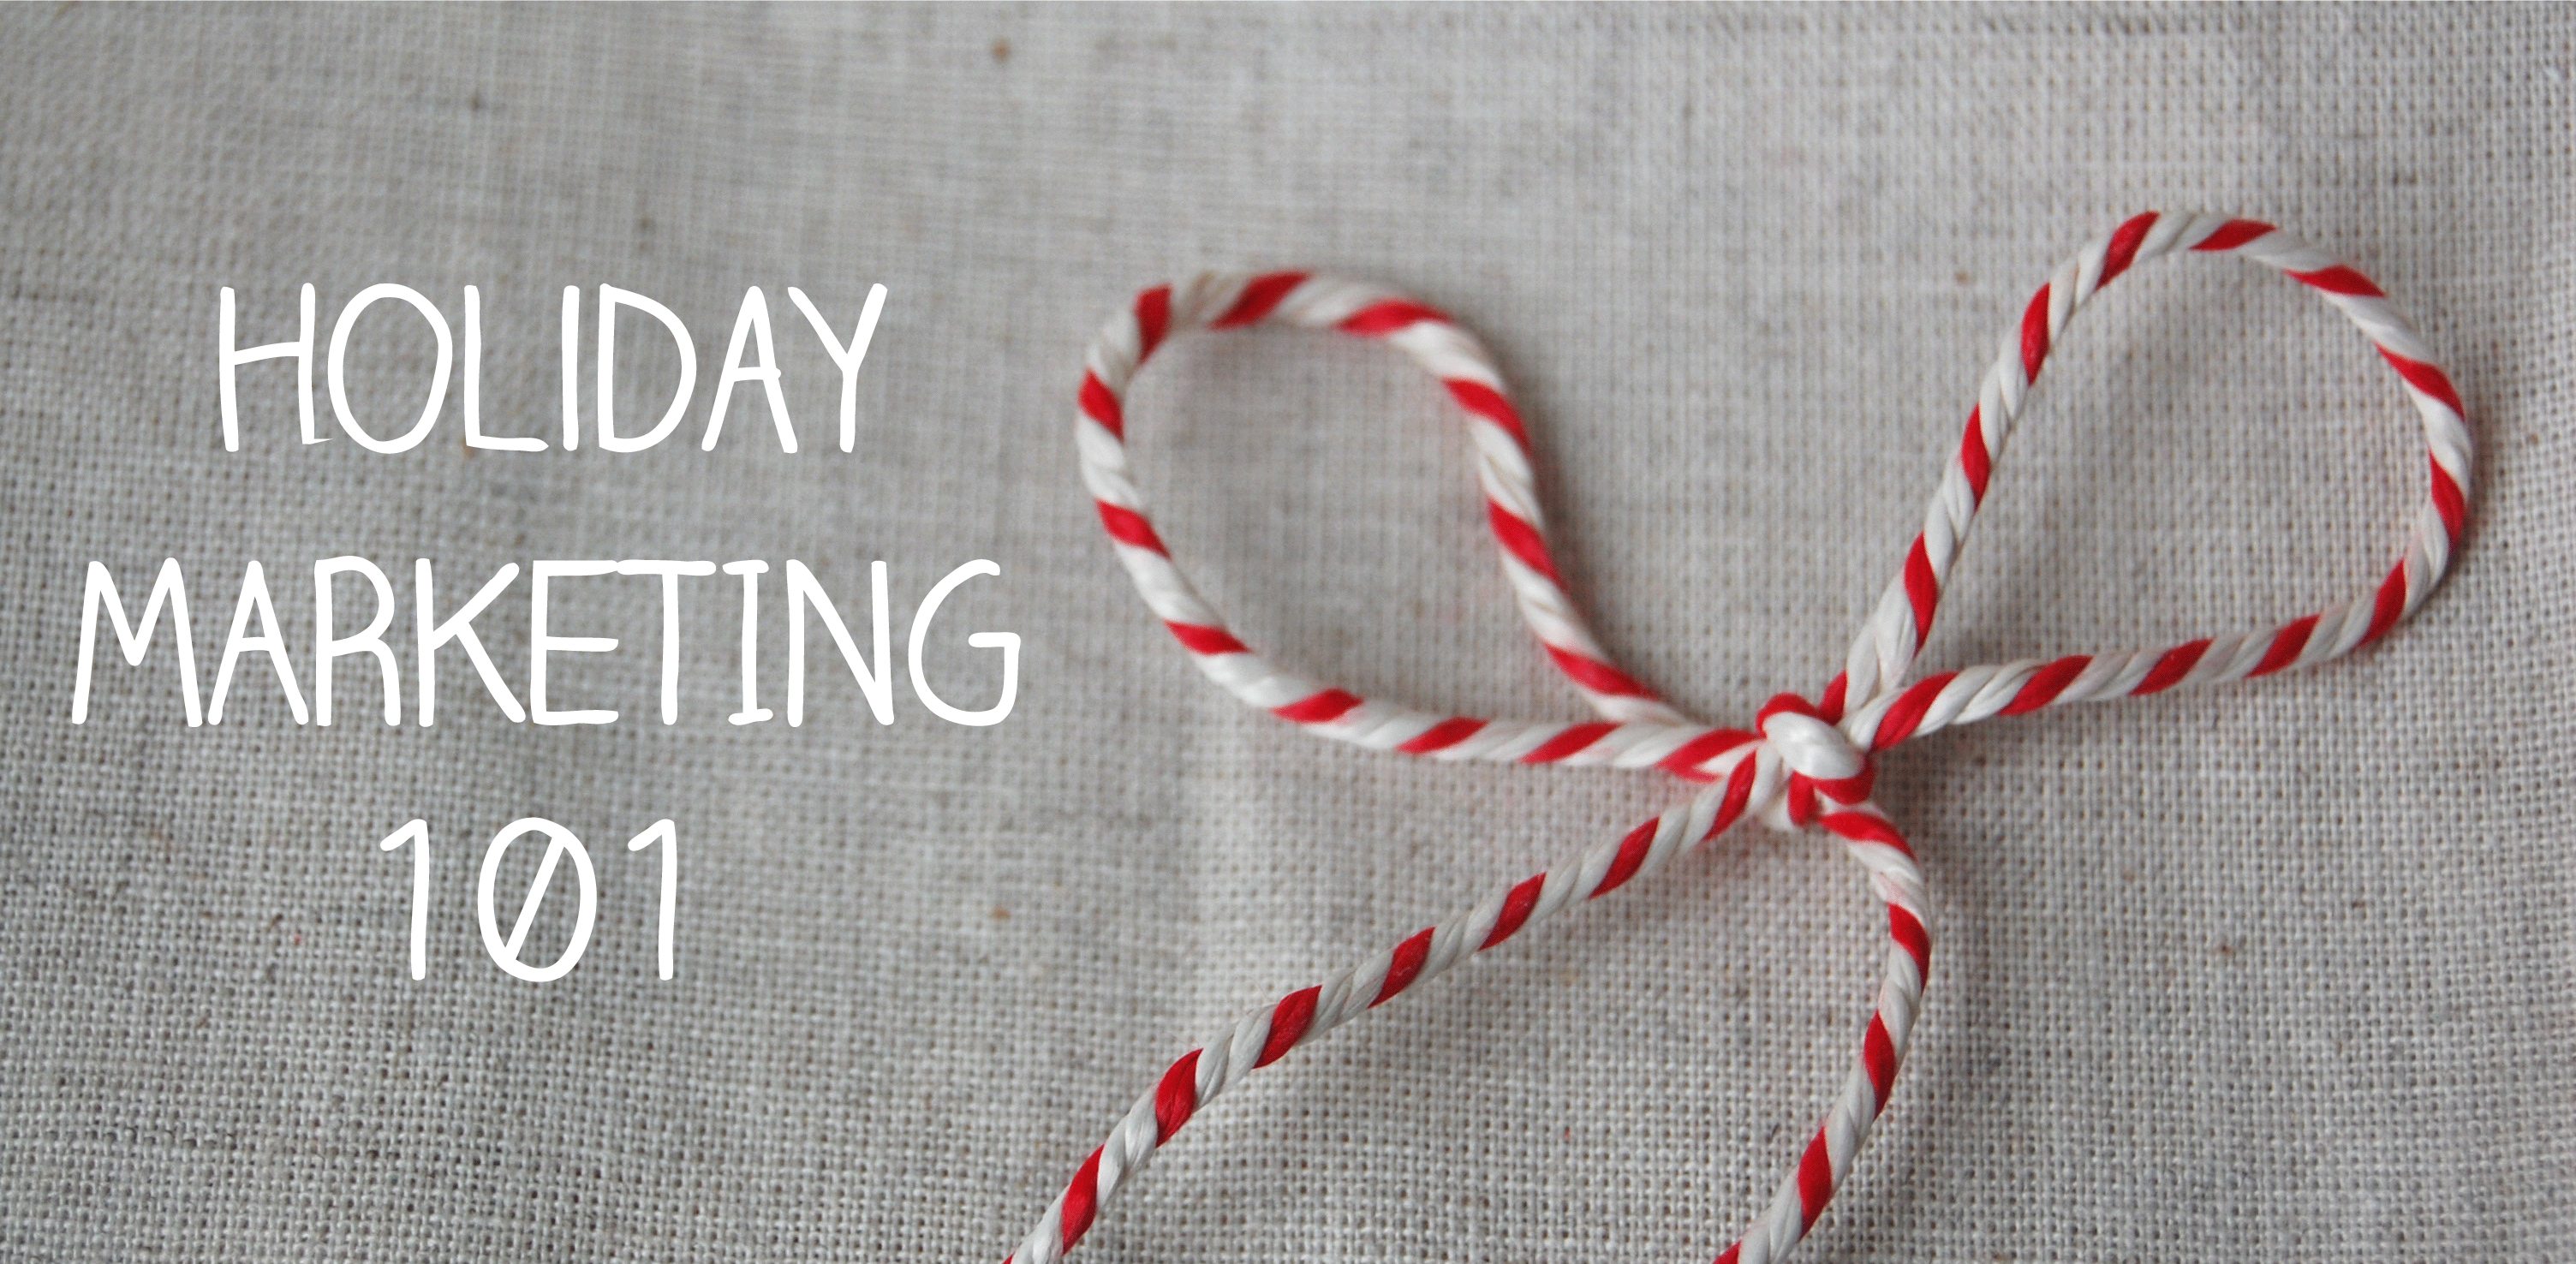 Practice Marketing Ideas for the Holidays